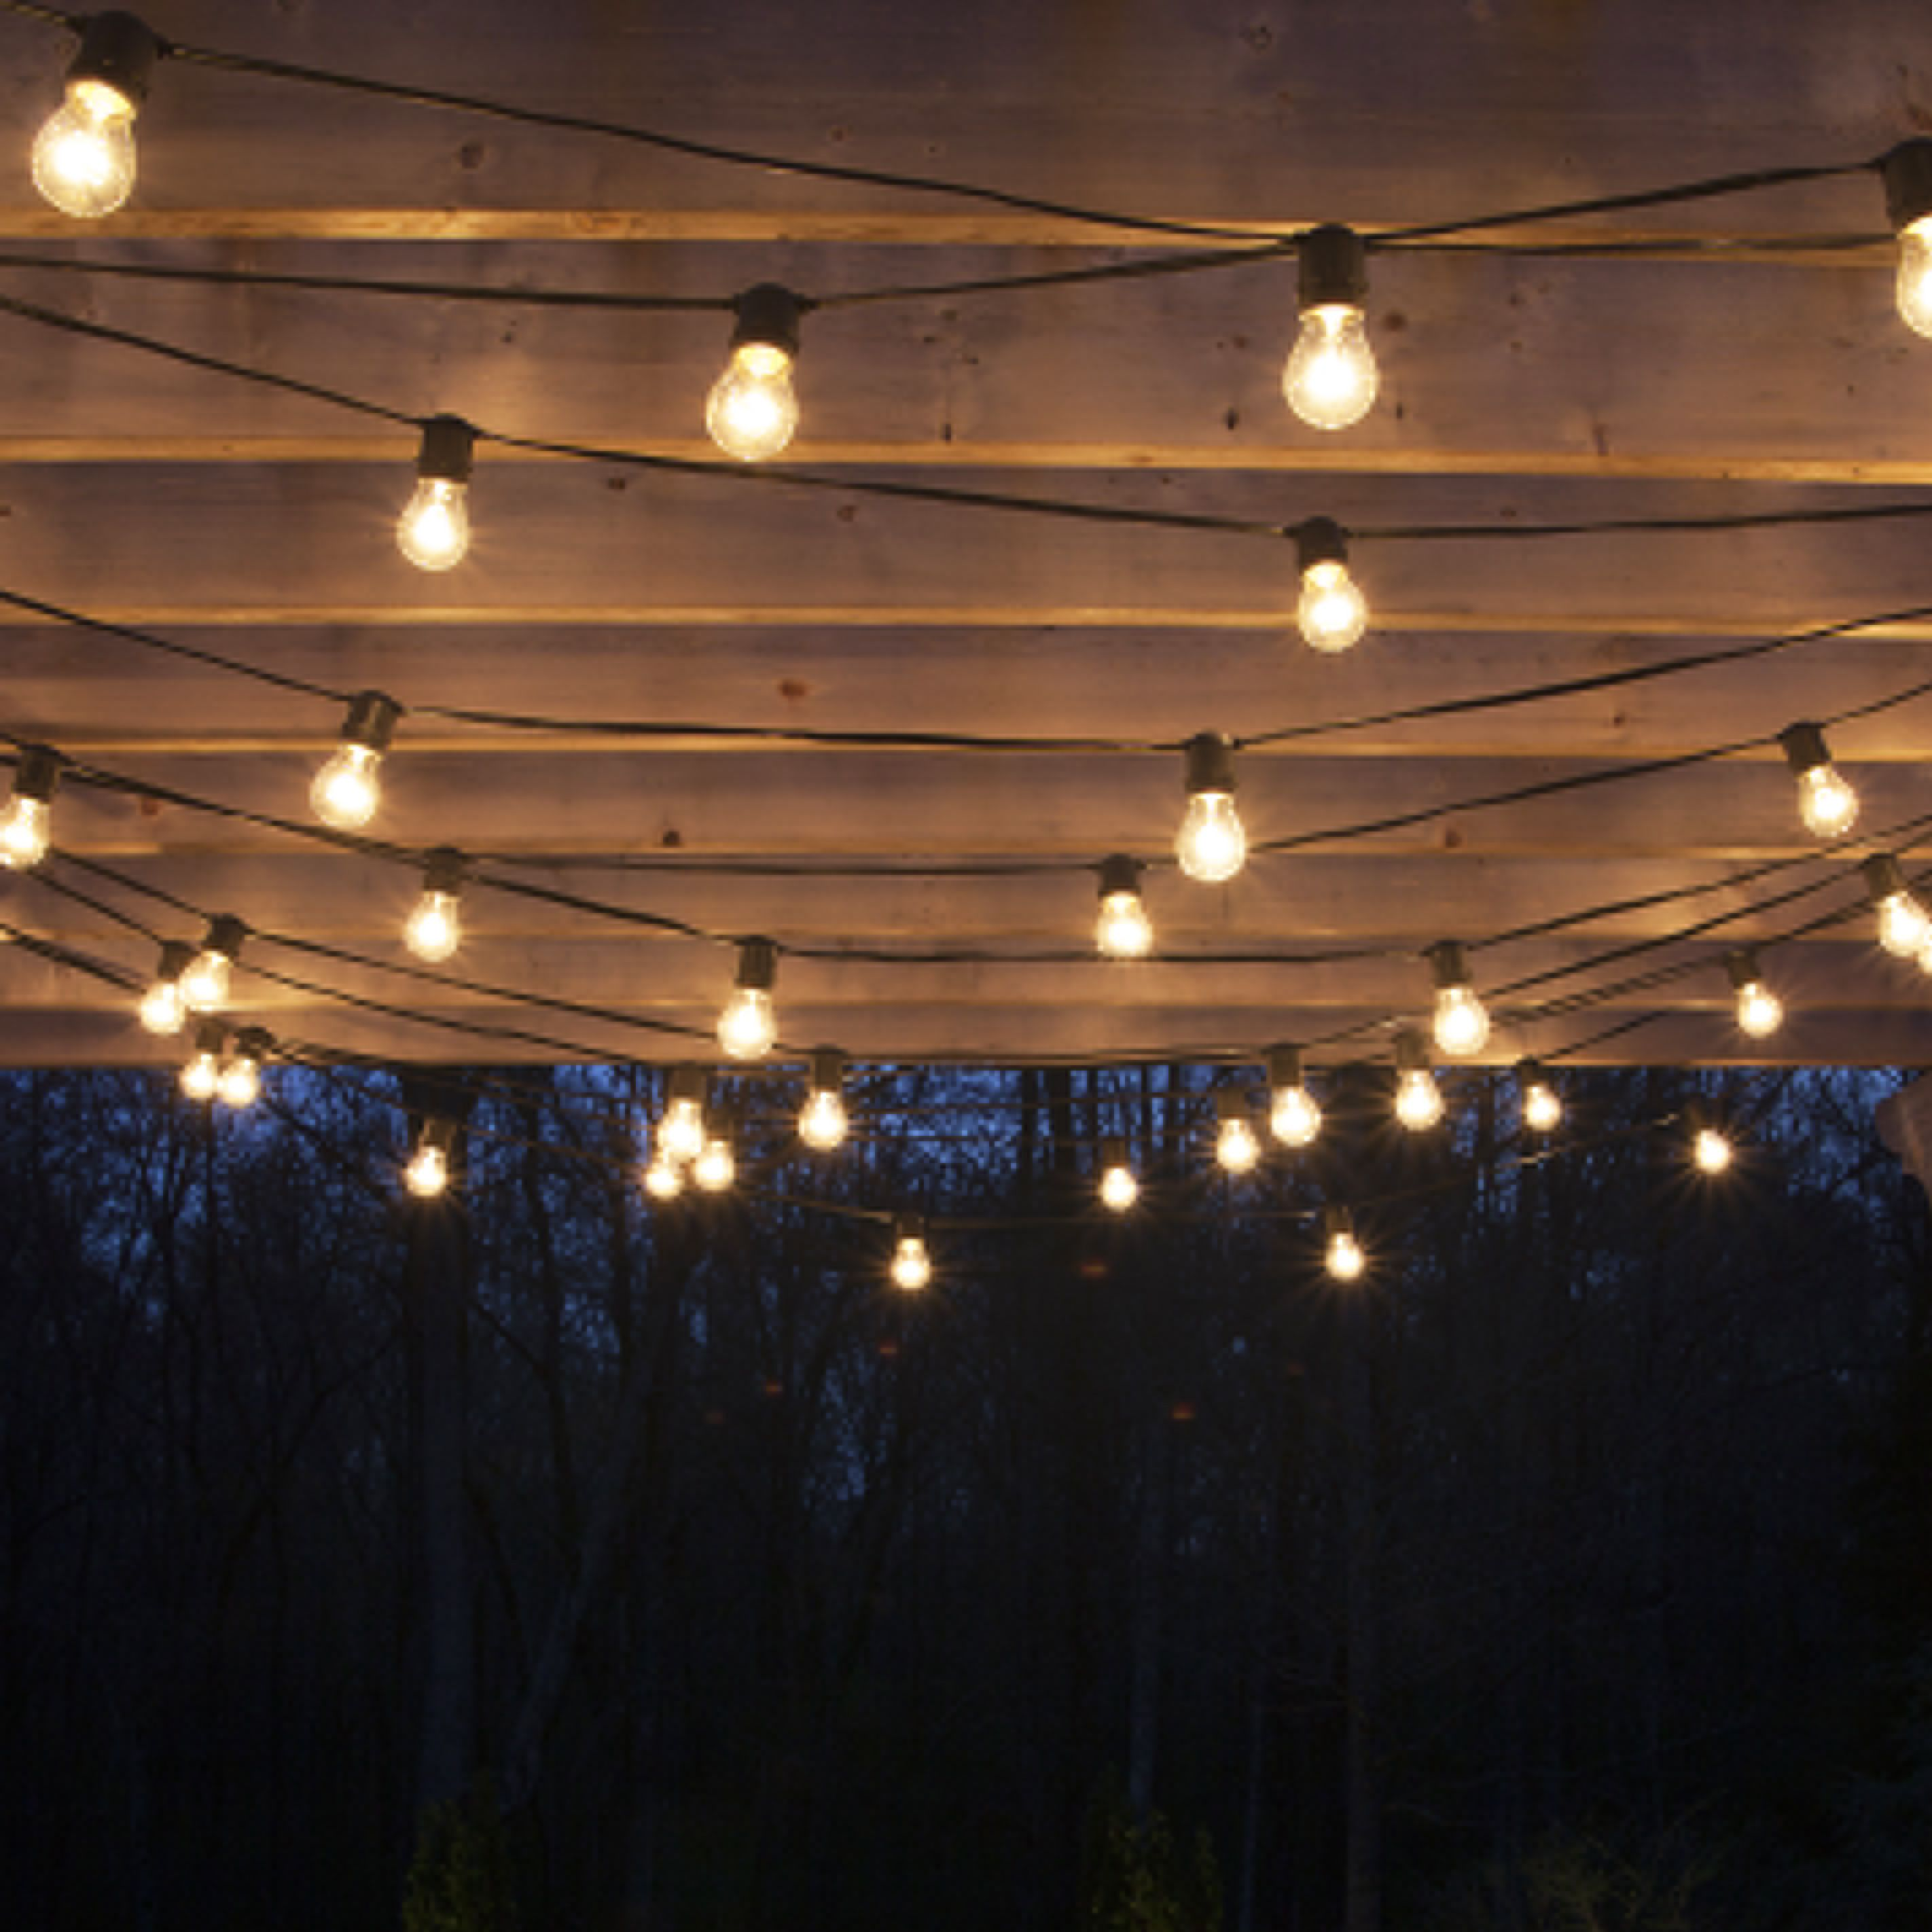 drape patio lights from pergolas - Patio Light Ideas